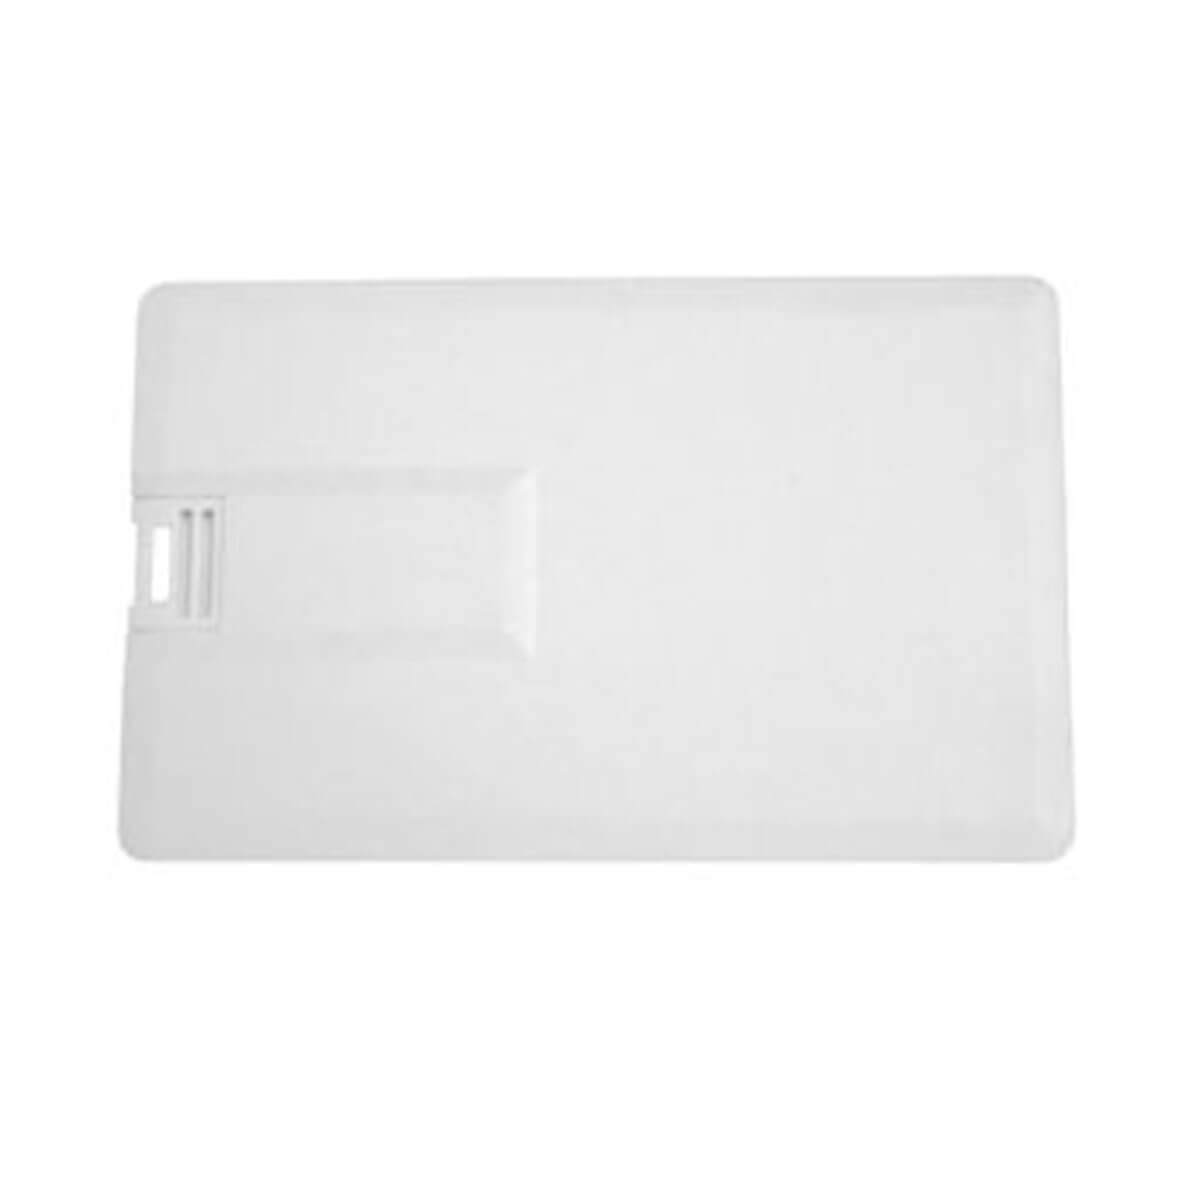 Superslim Credit Card 8G White-White